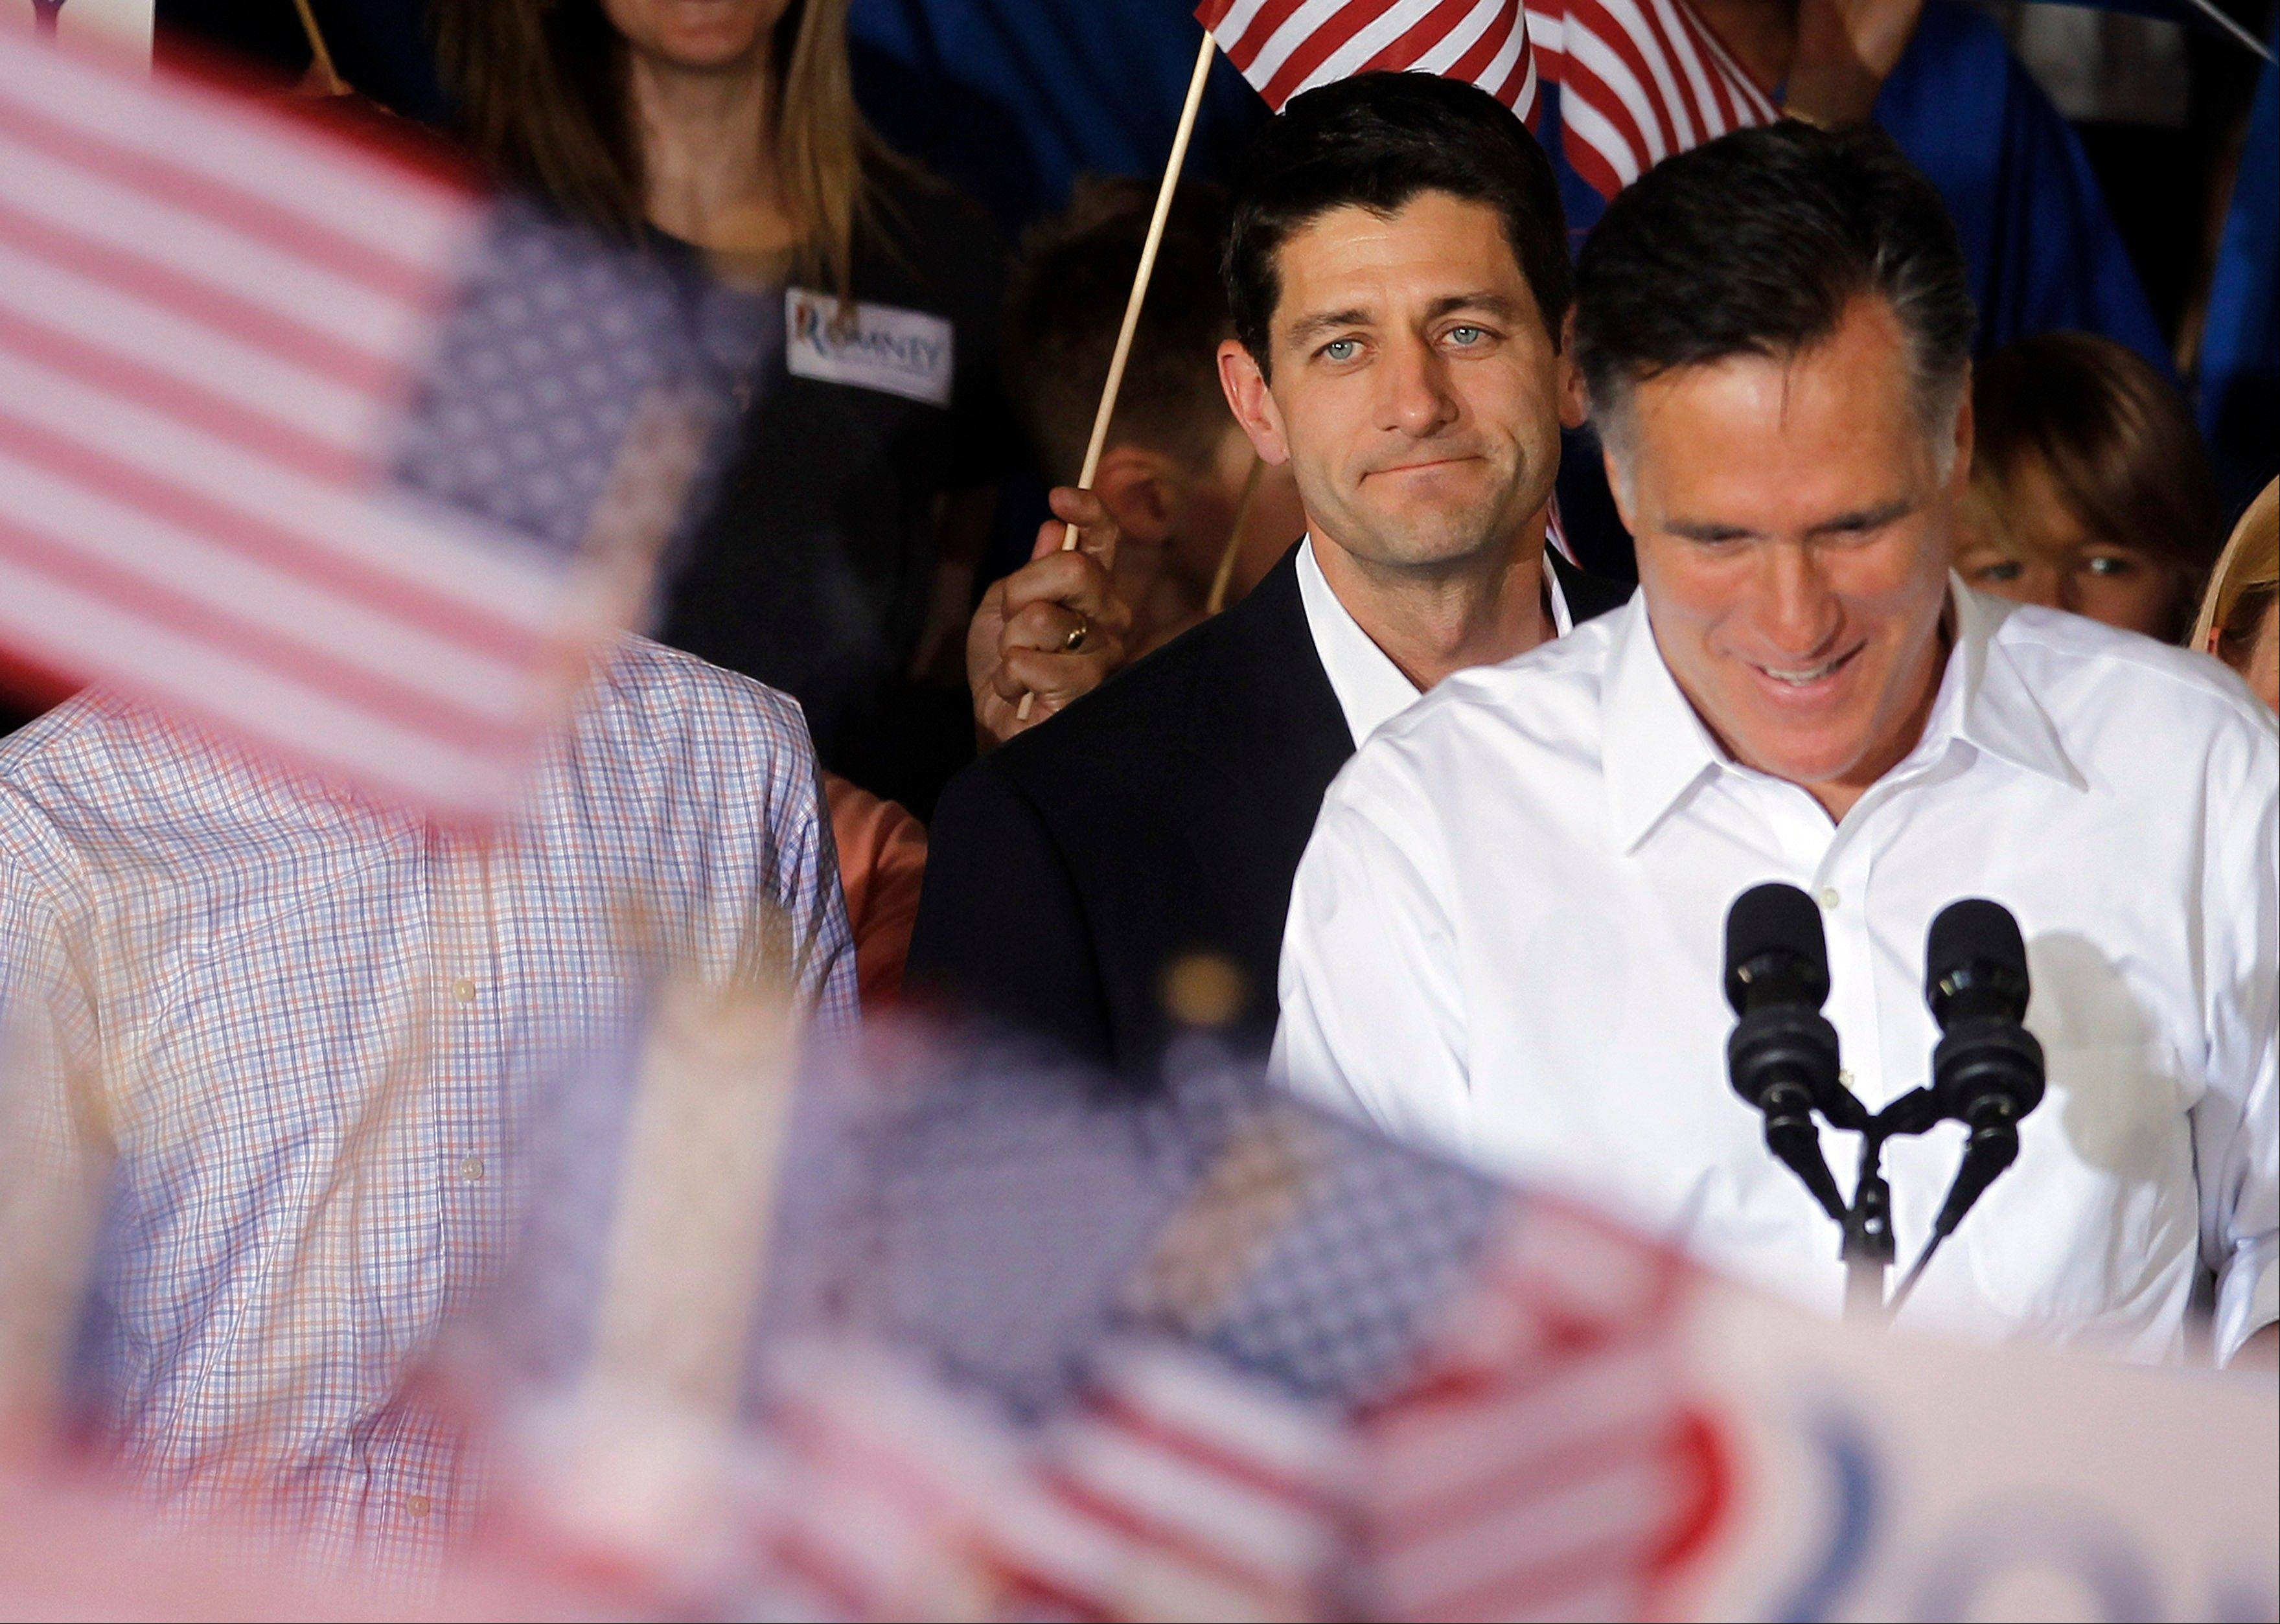 Republican presidential candidate, former Massachusetts Gov. Mitt Romney, right, with his newly announced vice presidential running mate, Wisconsin Republican Rep. Paul Ryan standing behind him, during a campaign rally Saturday in Manassas, Va.